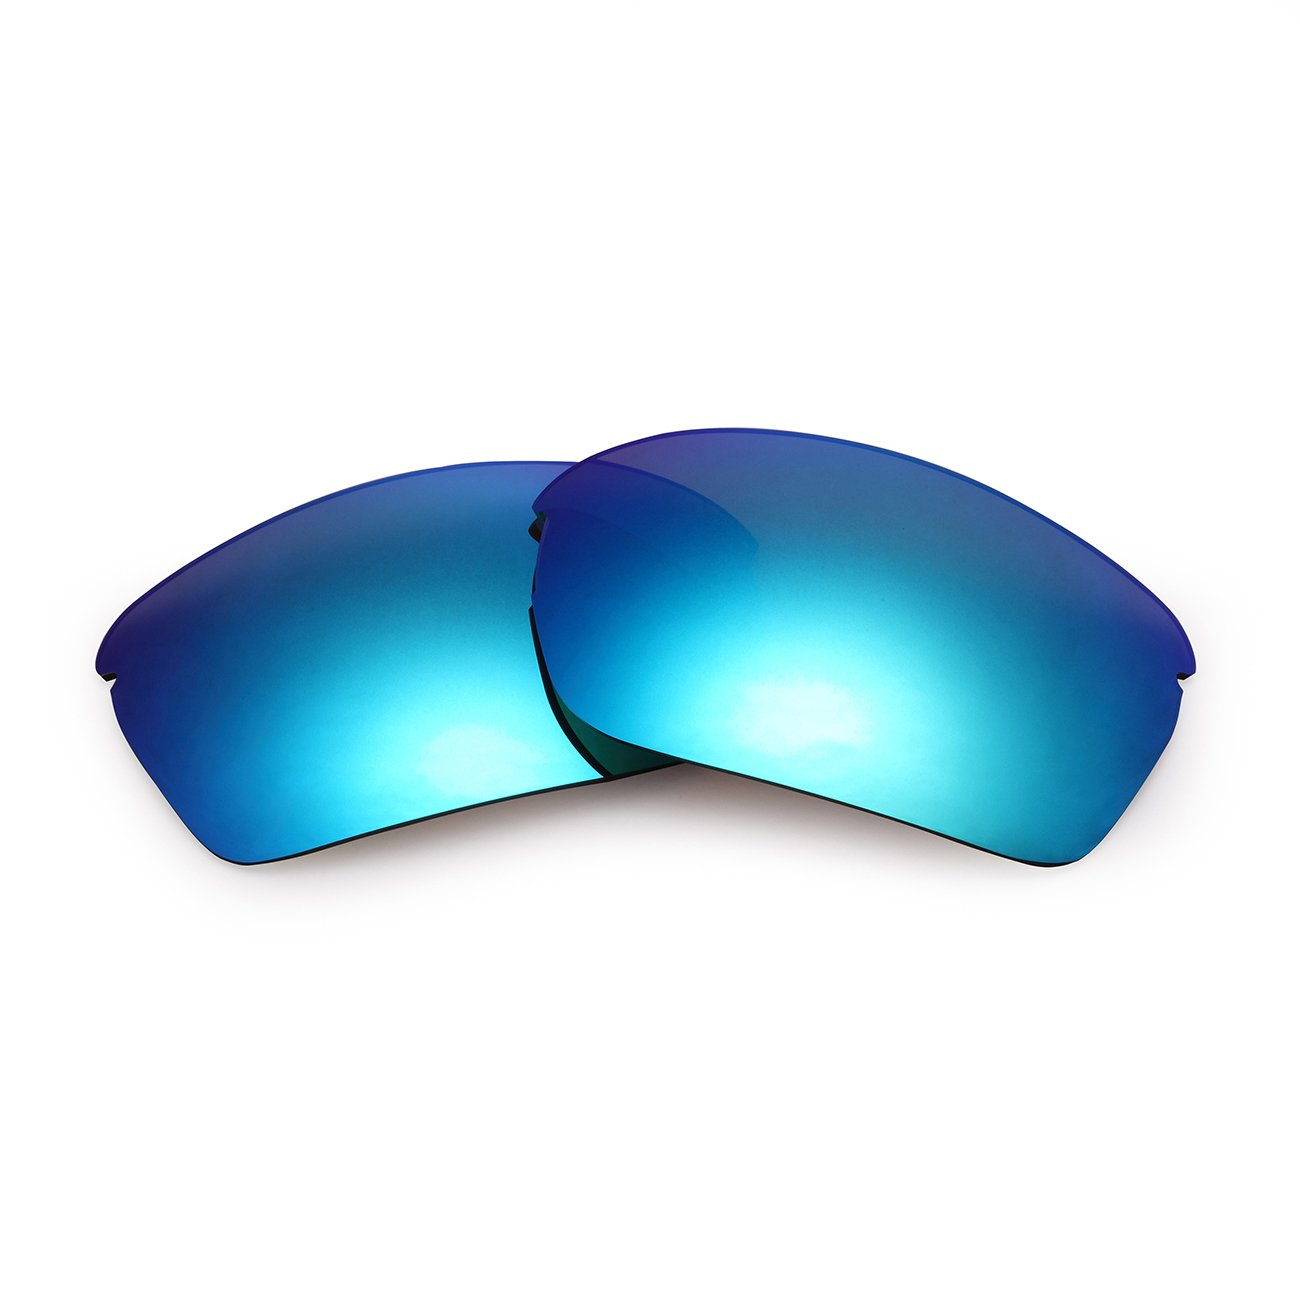 OKAYNIS Polarized Replacement Sunglasses Lenses for Oakley RPM Squared blue 06